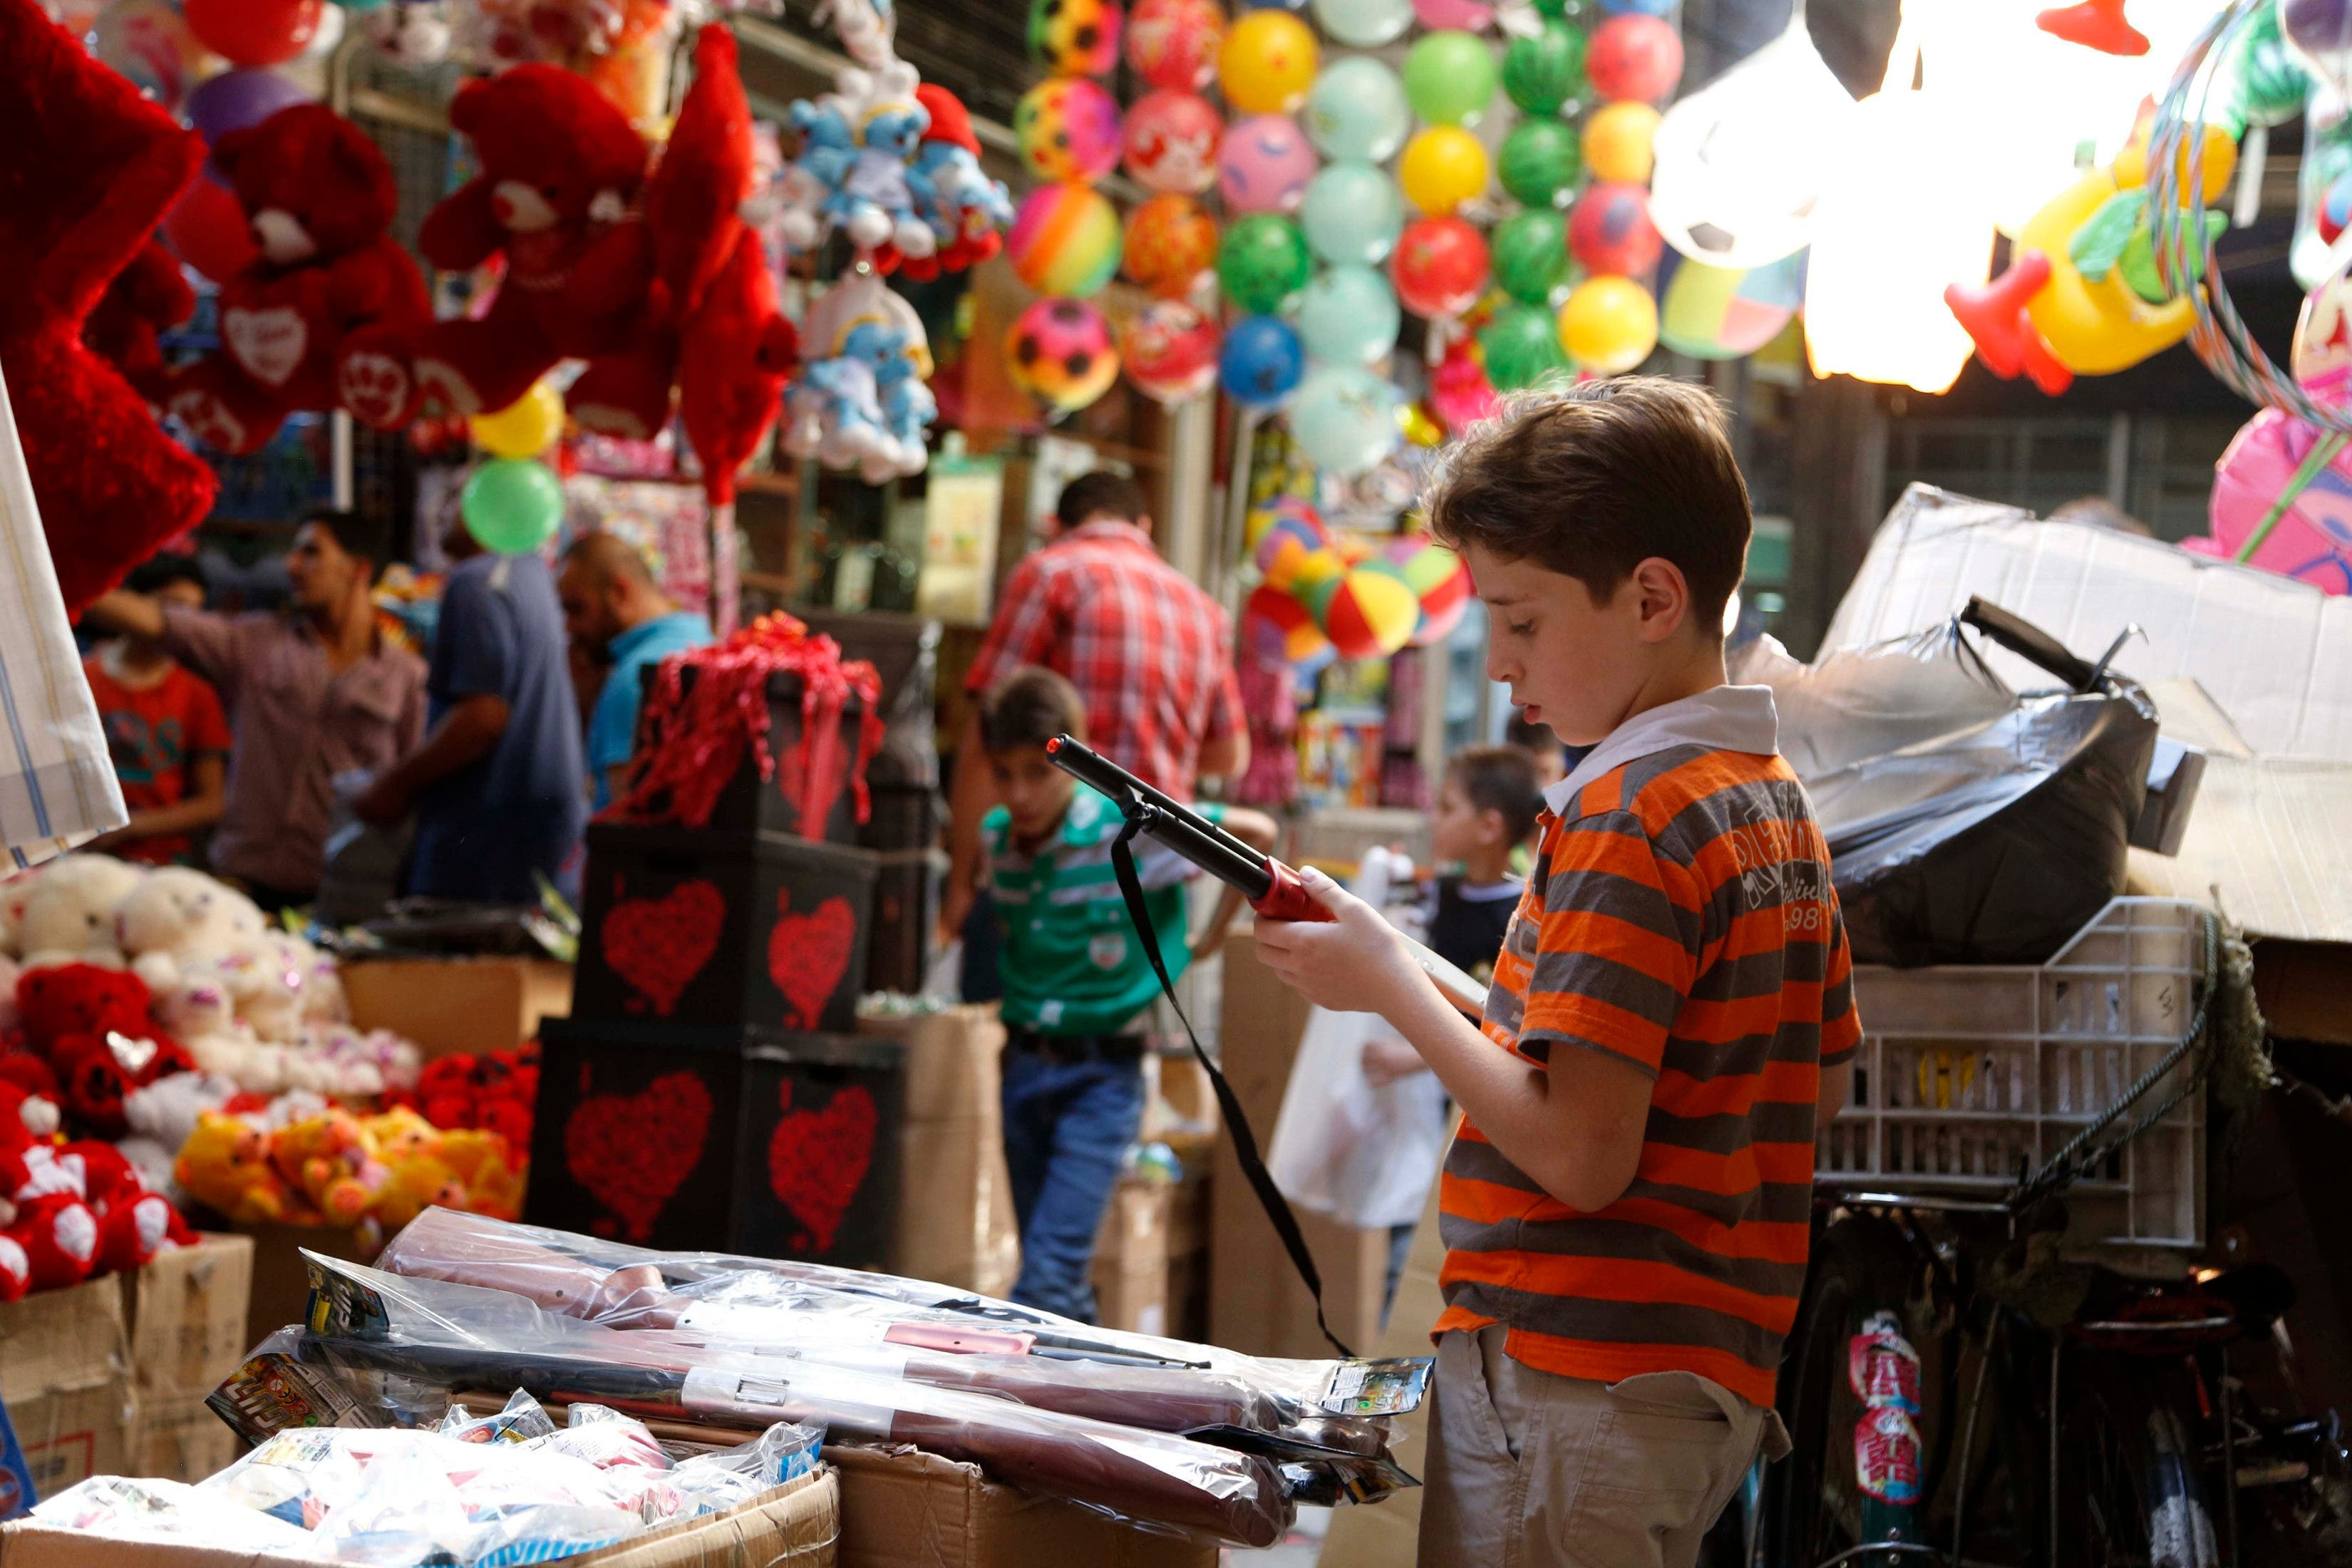 A child inspects a toy gun in Al-Asrouniyeh souk ahead of Eid al-Fitr celebrations in Damascus July 27, 2014.  Reuters